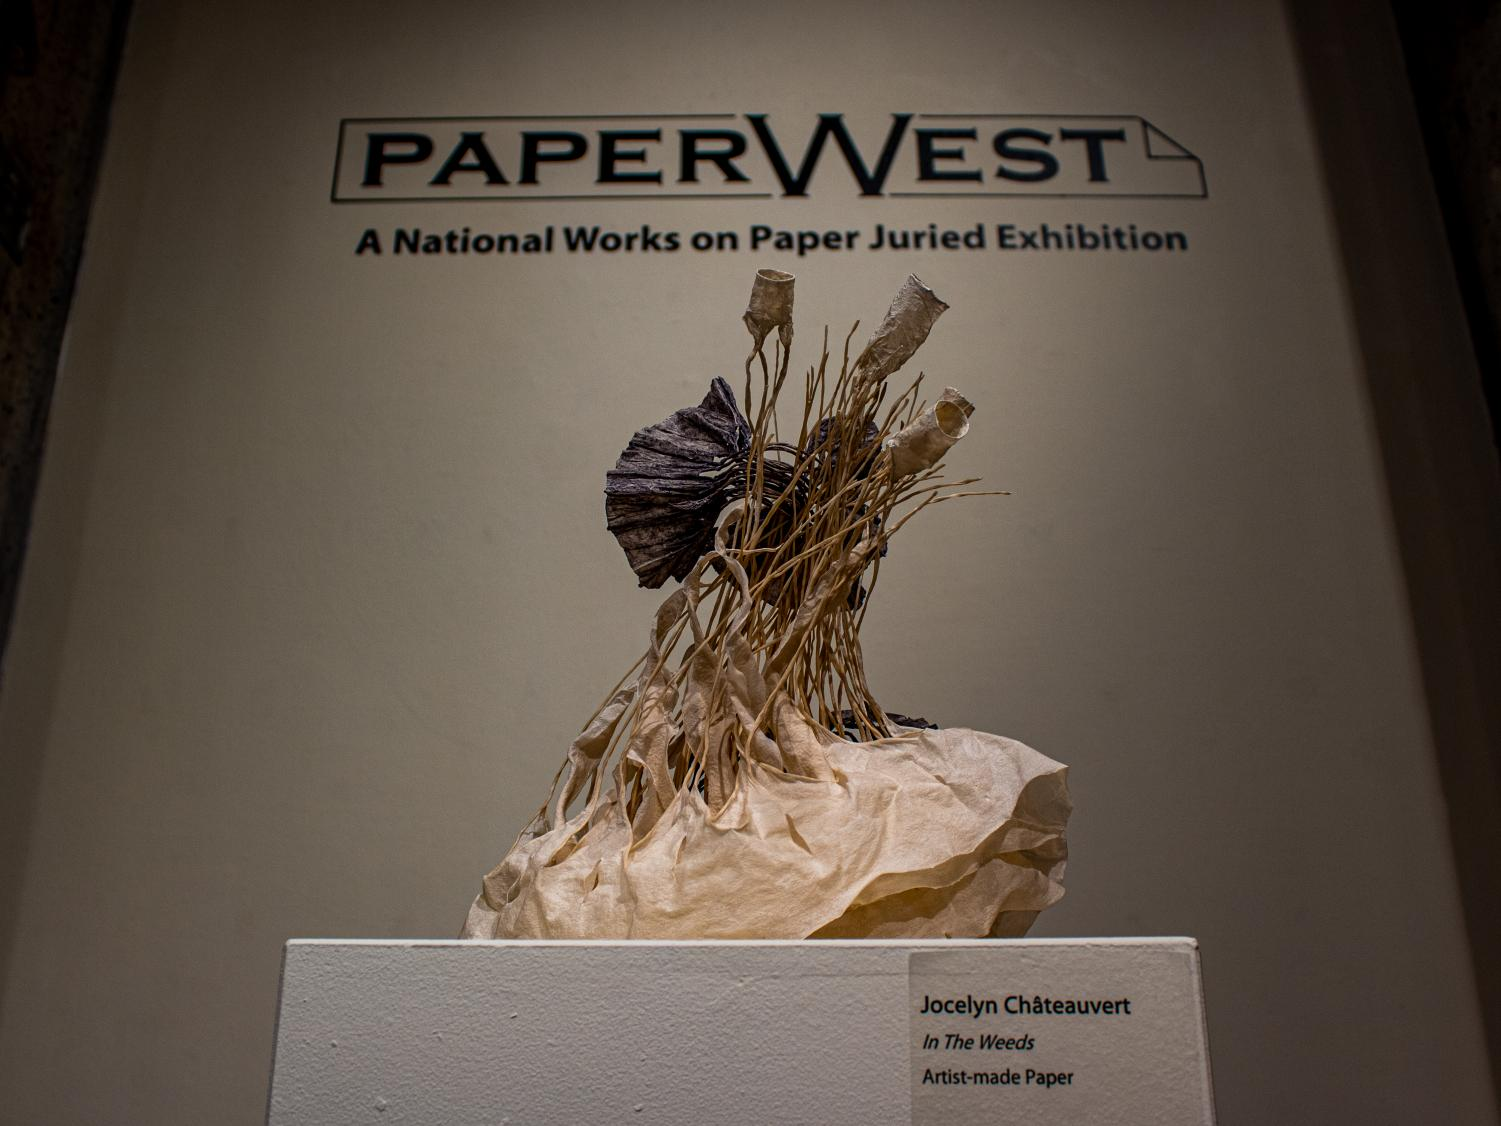 All photos are exhibits on display at the PaperWest Exhibition. Captured on Tuesday, October 15th, 2019. (Photo by Jermy Thomas   The Daily Utah Chronicle)